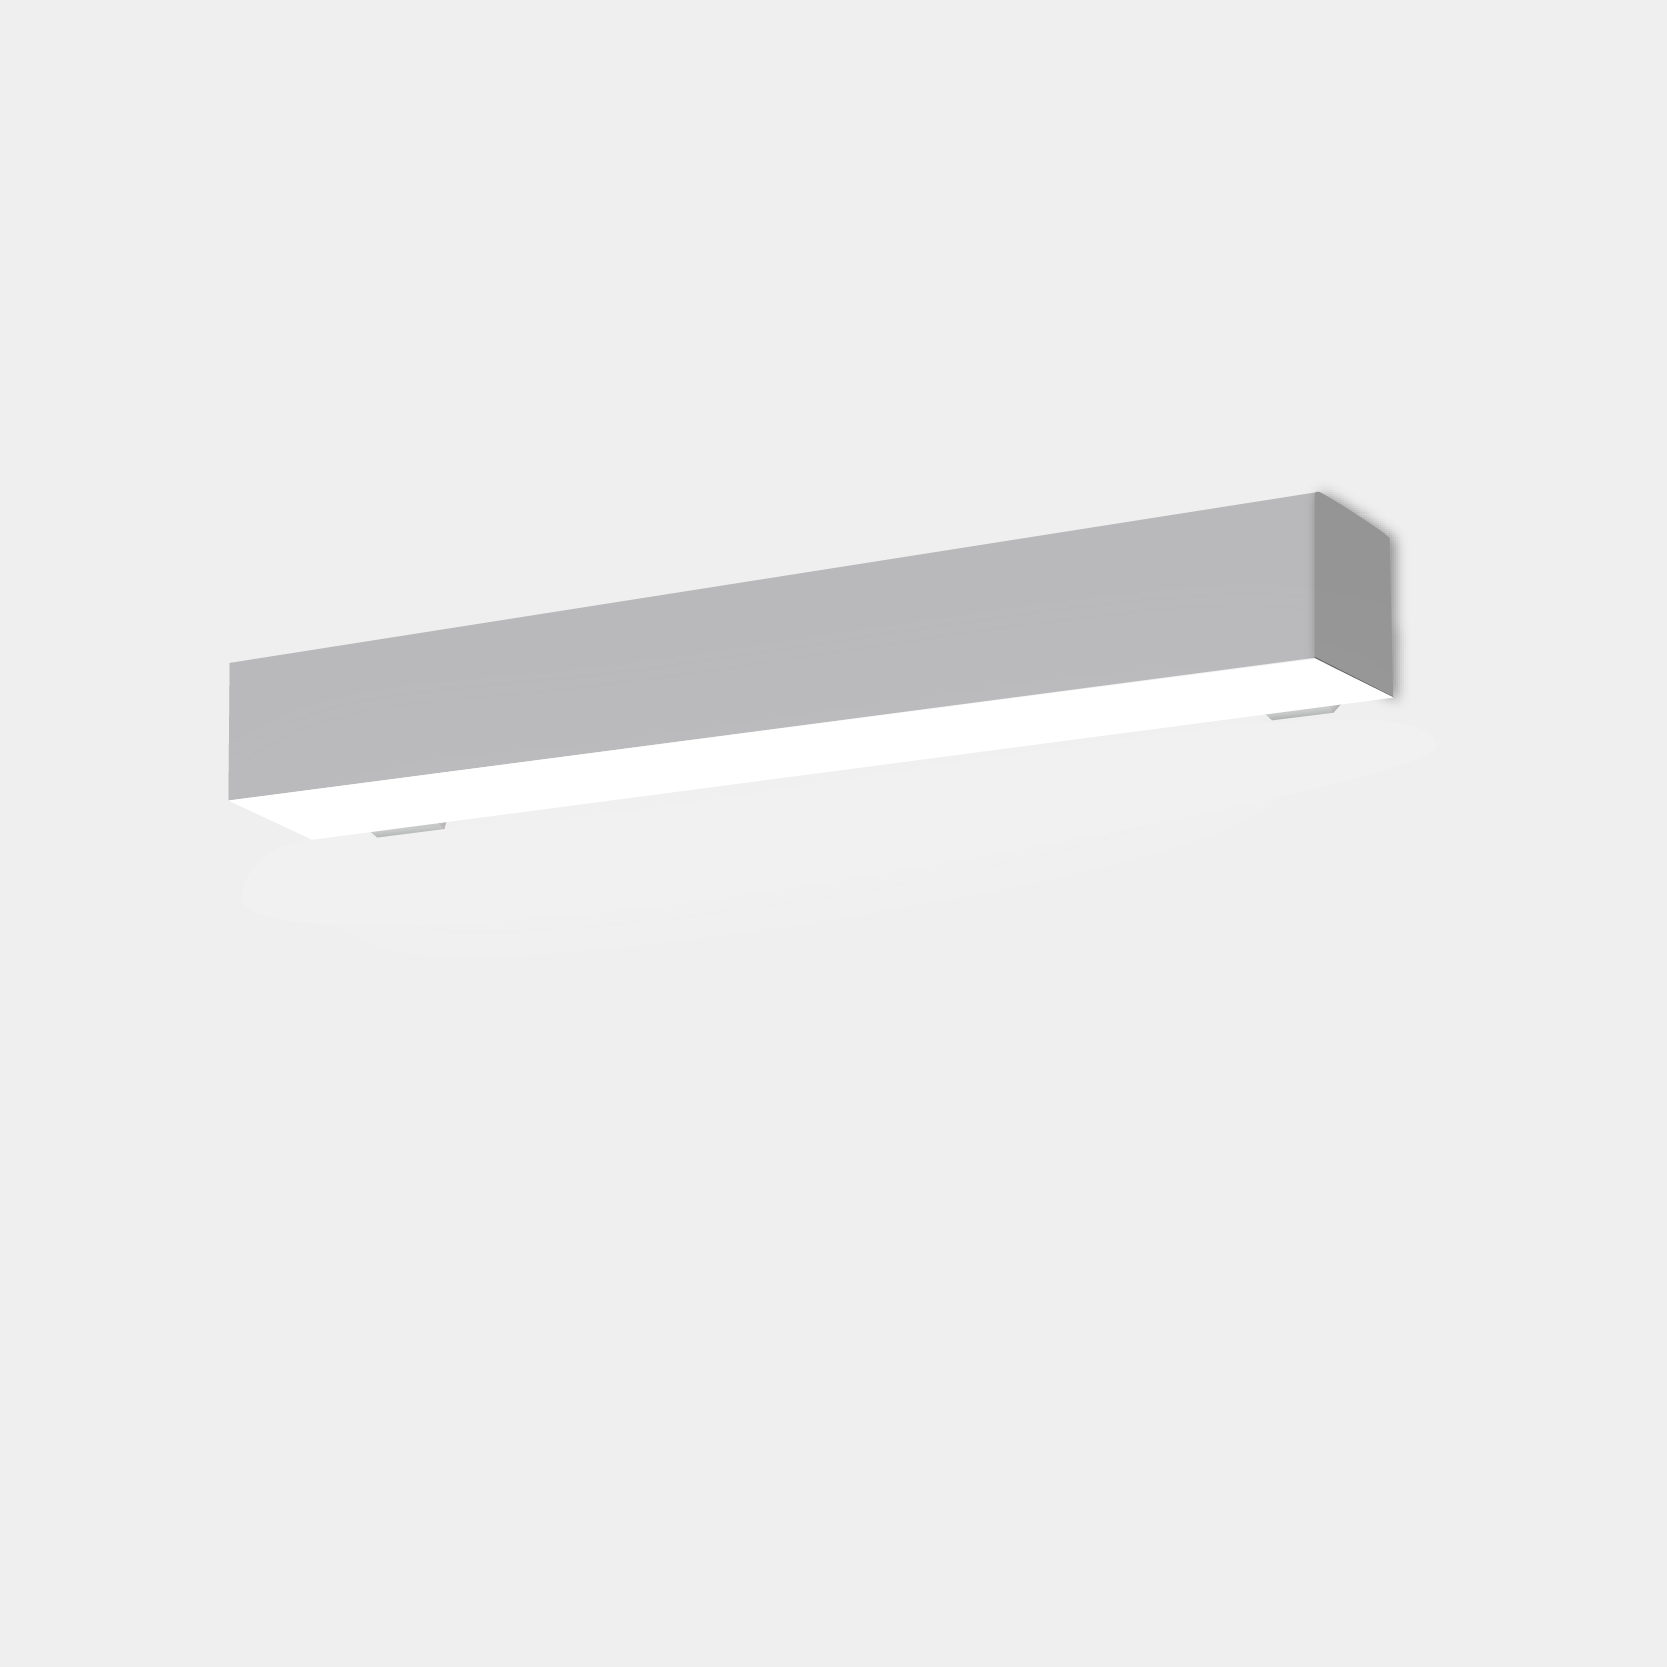 Alcon Lighting 11158 4 Beam 20 Series Architectural Led Foot Linear Wall Mount Direct Indirect Light Fixture